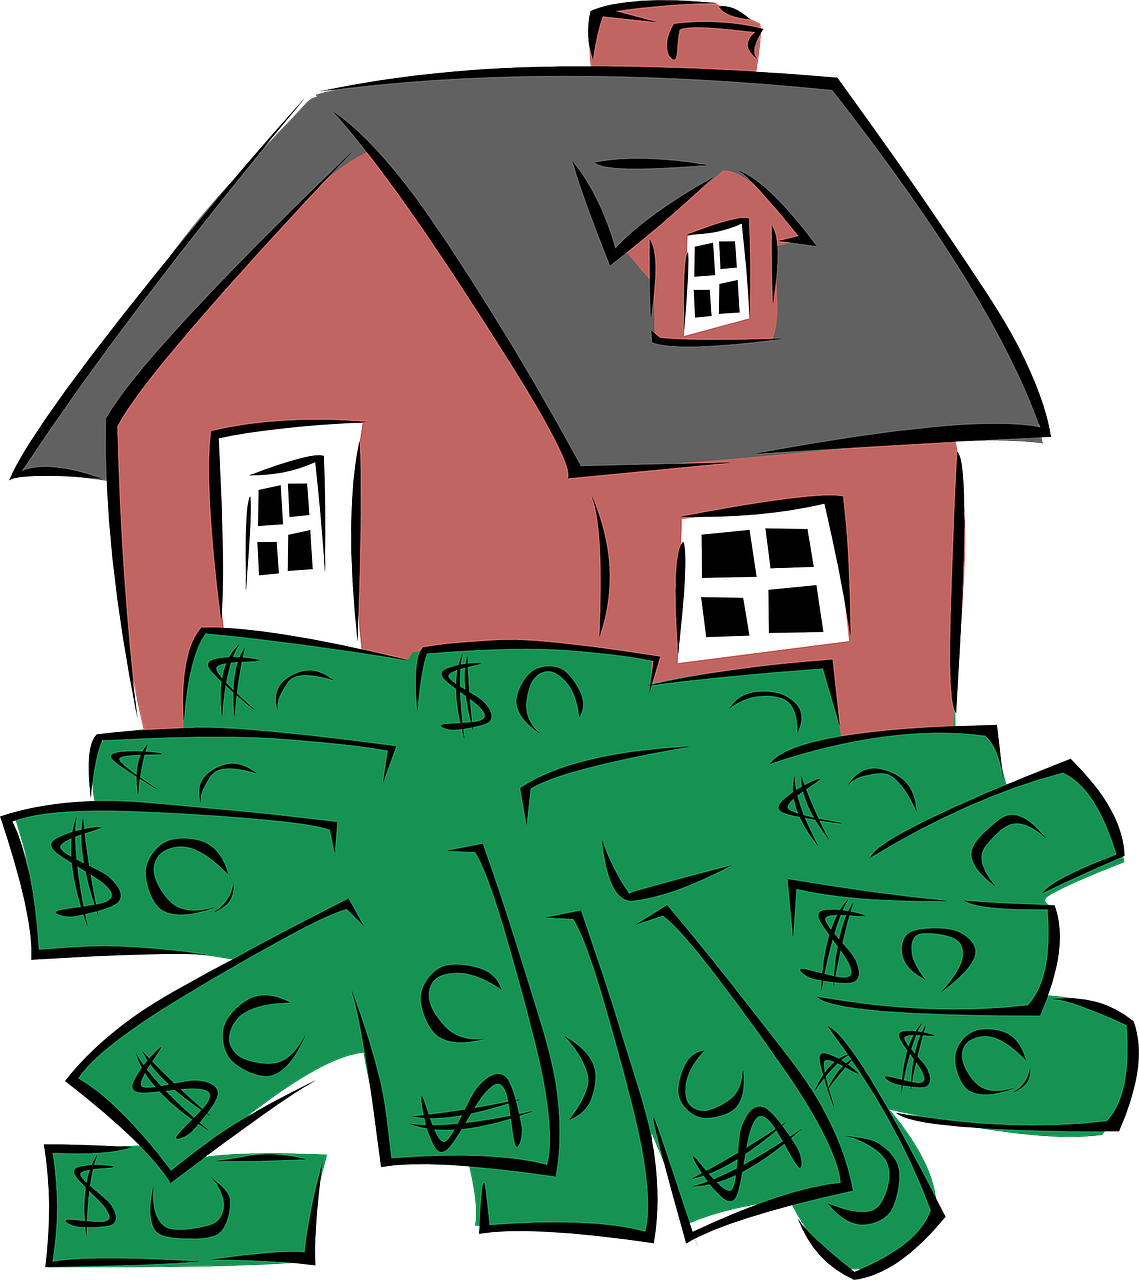 Money supply clipart free stock Low-cost energy saving tips for landlords - The Money Shed free stock